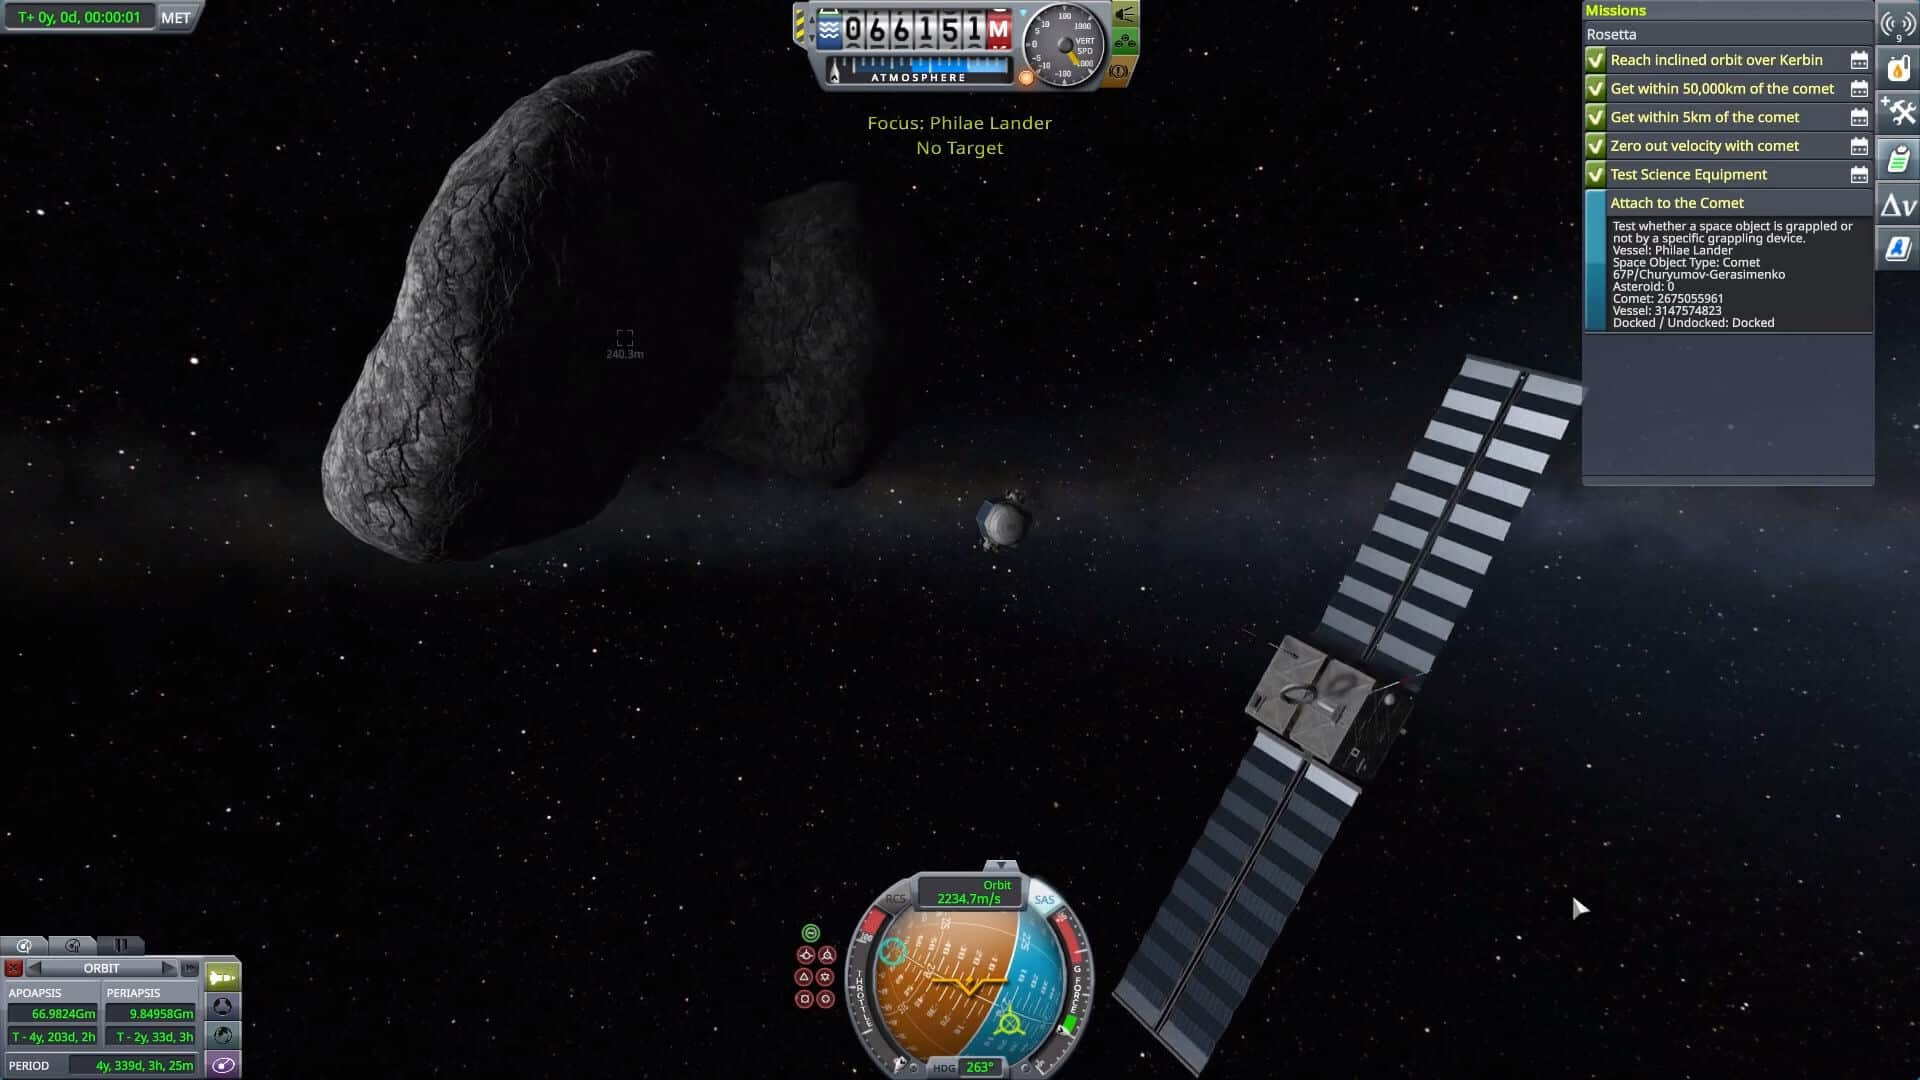 shared horizons update releases for kerbal space program screenshot 02